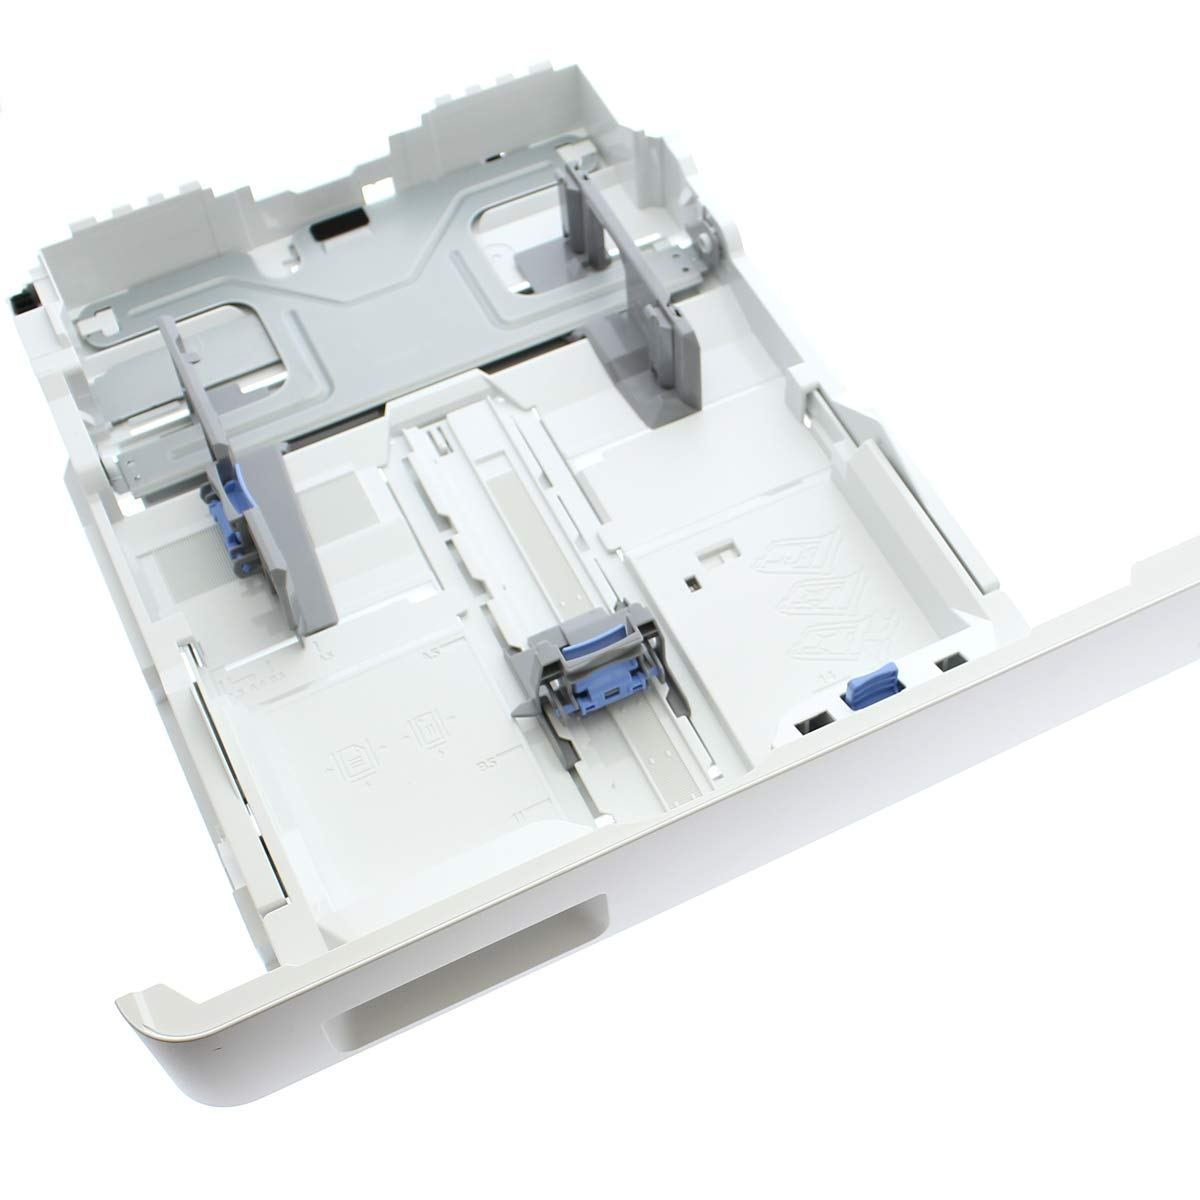 RM2-6377 250 Sheet Input Paper Tray #2 for Color Laserjet Pro M452NW M452DN M452DW M477FNW M477FDN M477FDW